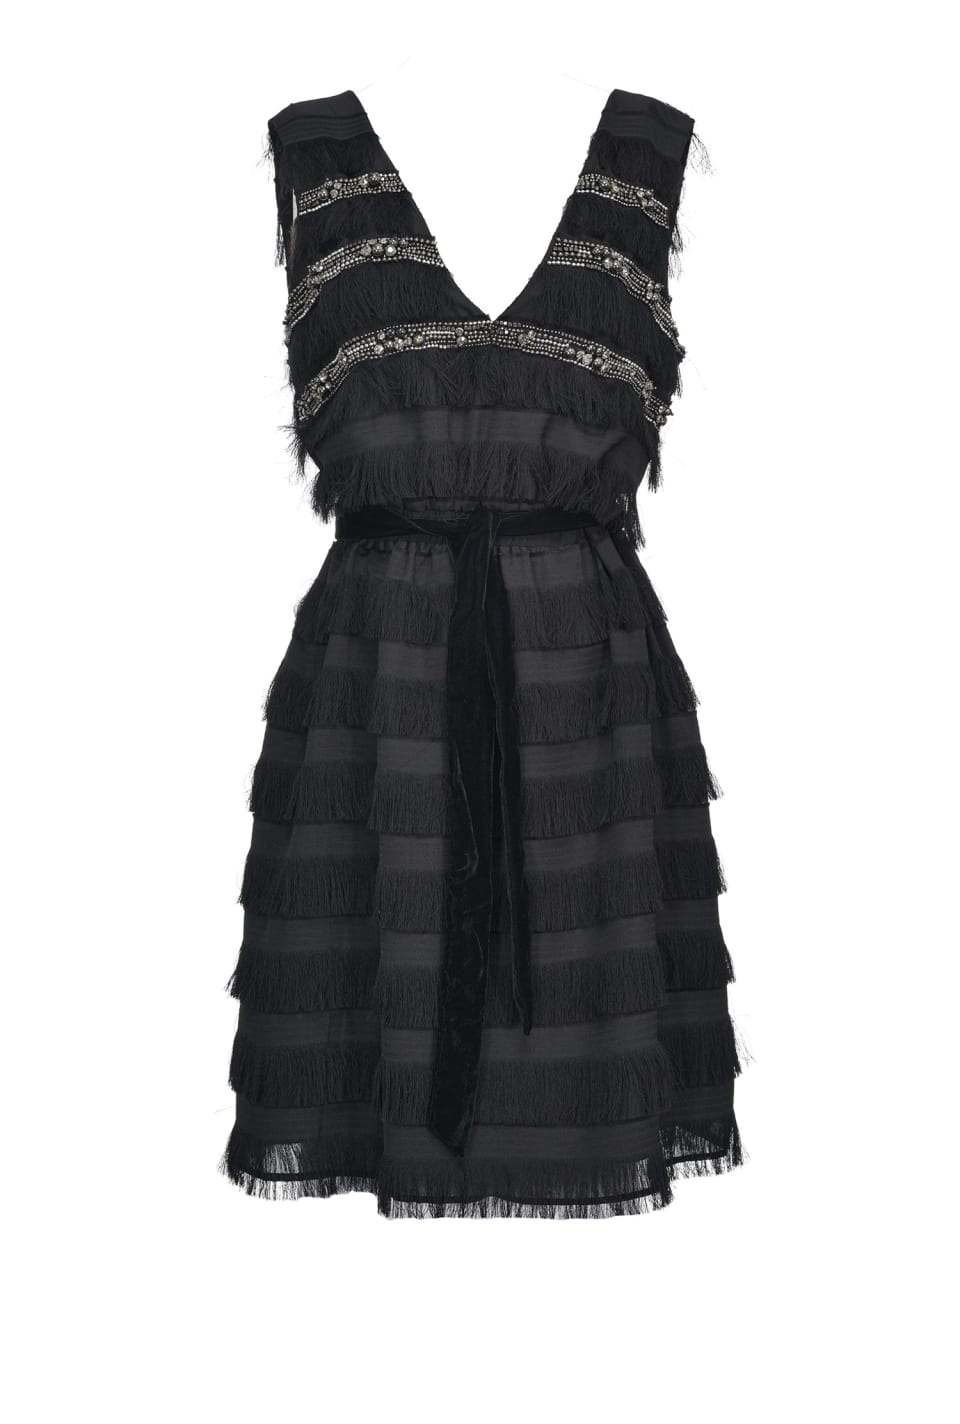 Jacquard dress with fringe and jewel embroidery